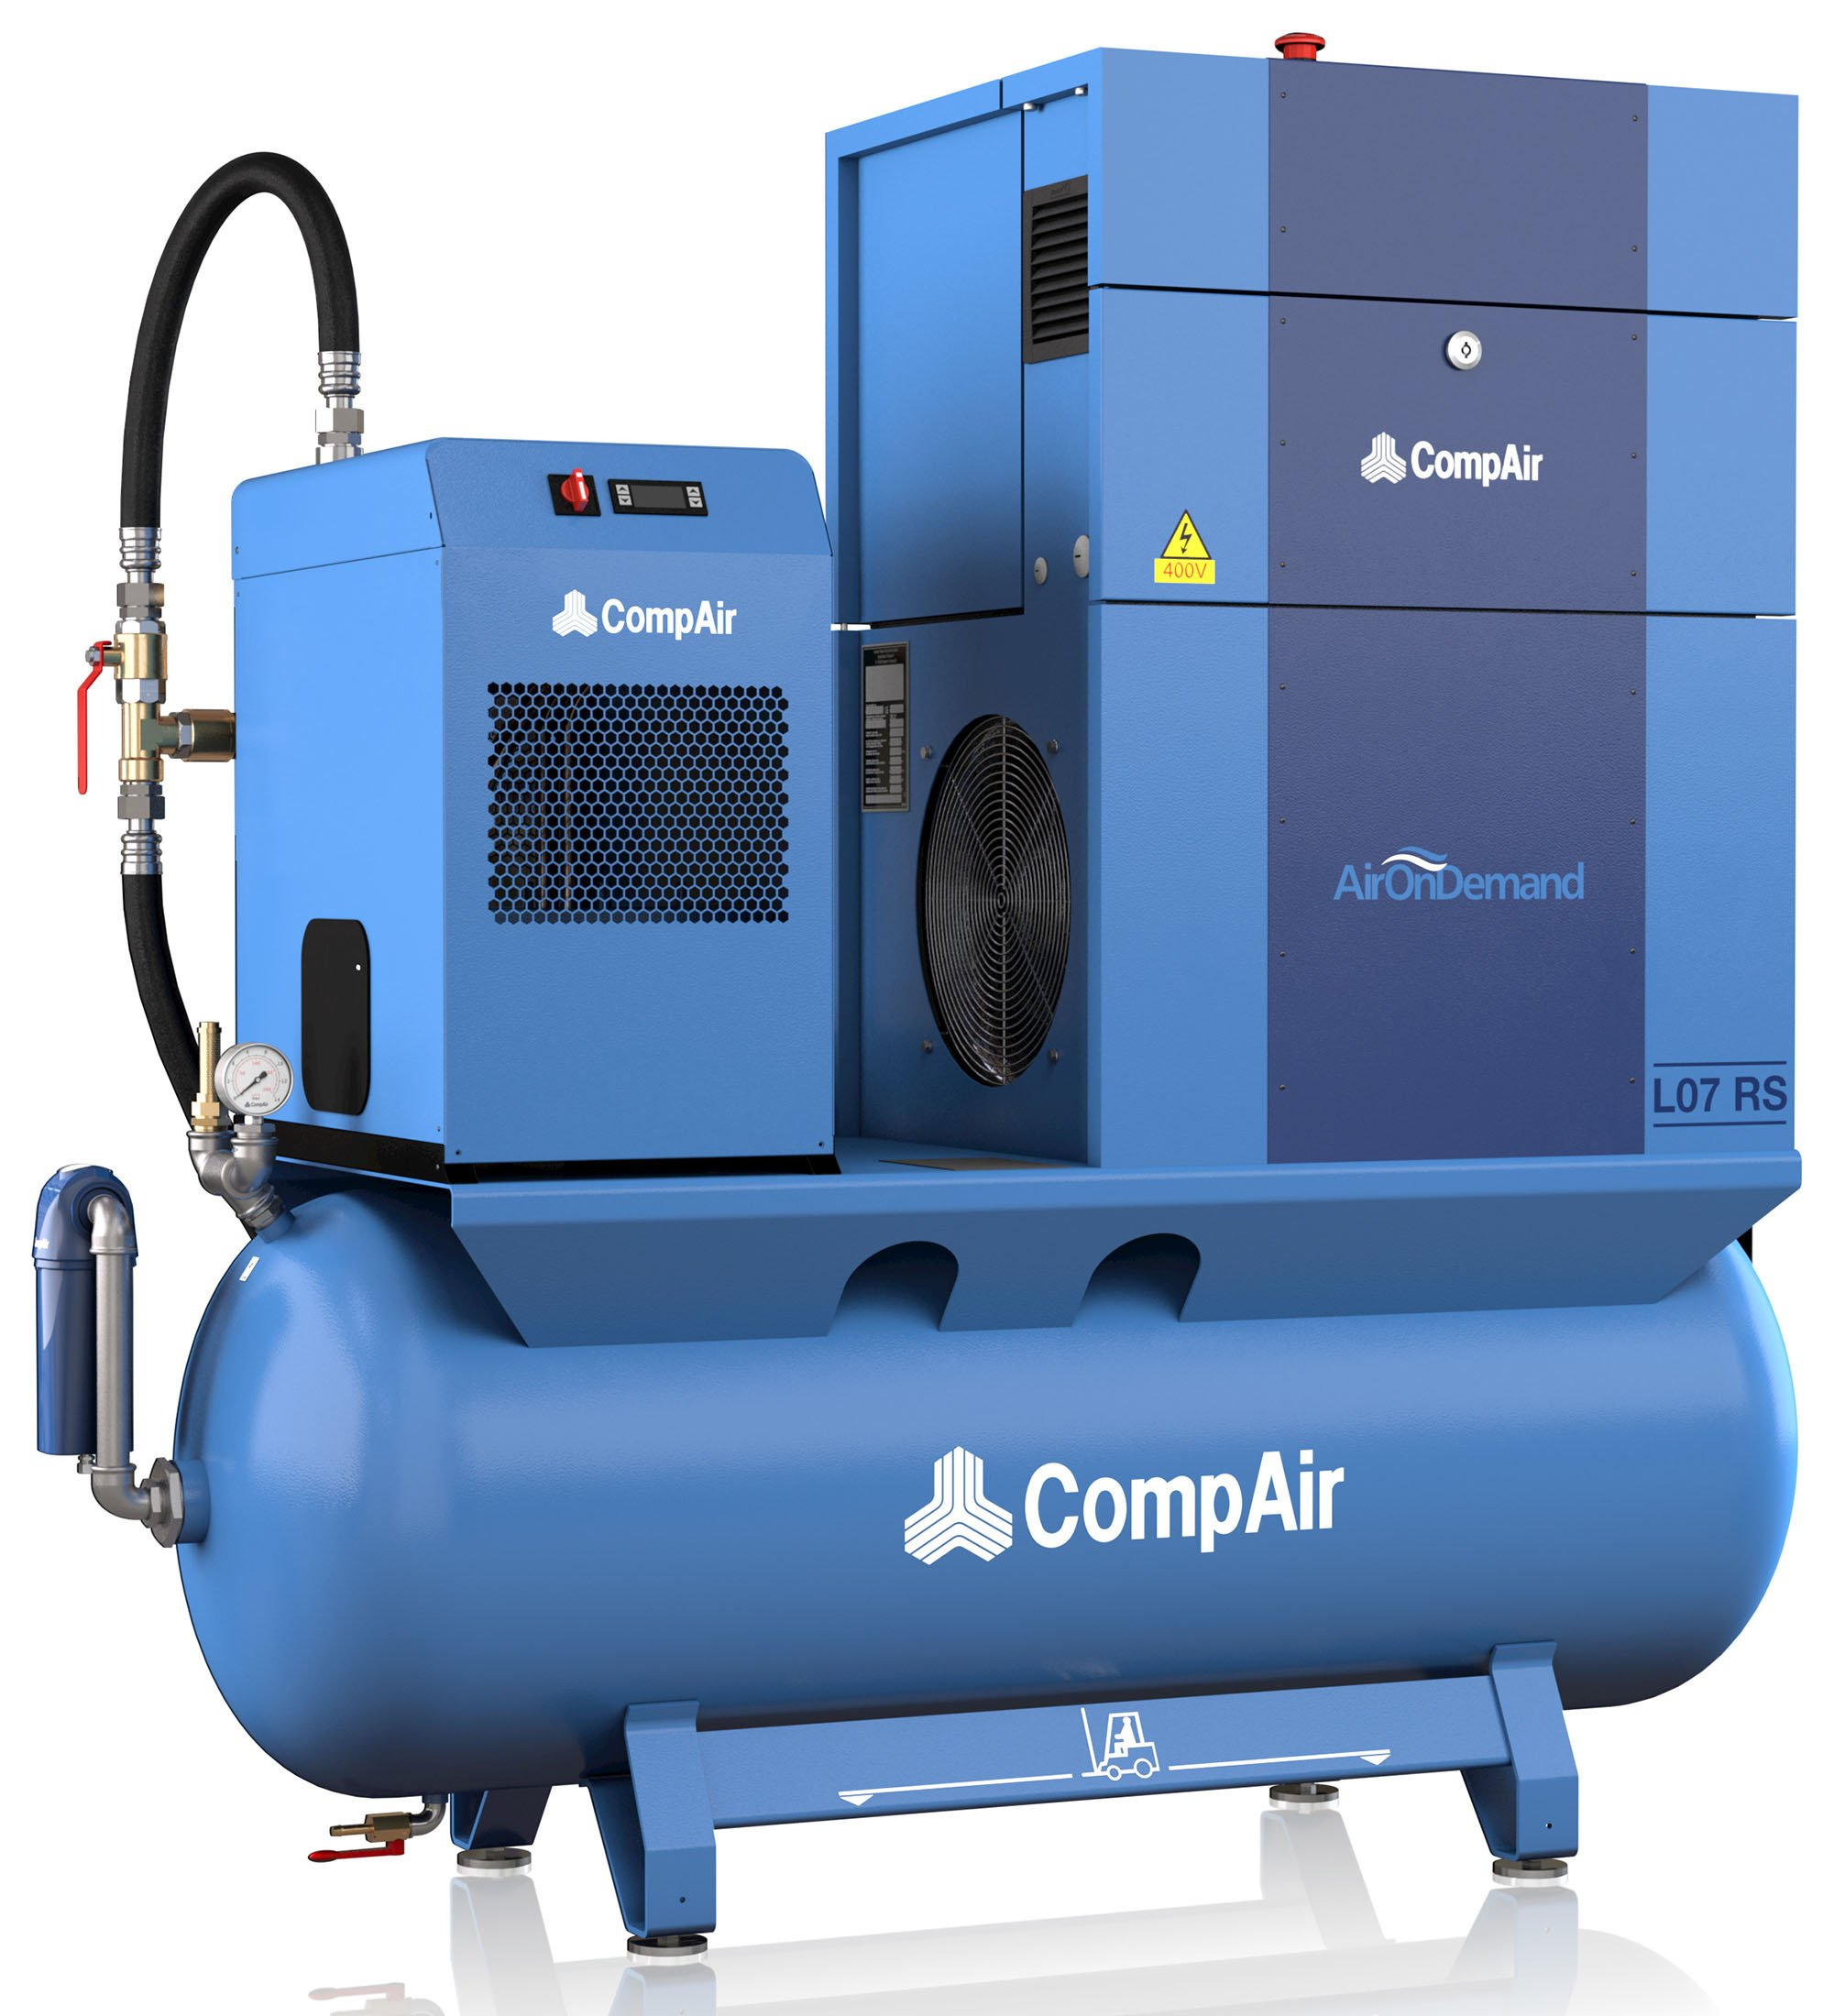 Midlands UK supplier of CompAir L07RS AirStation air compressor